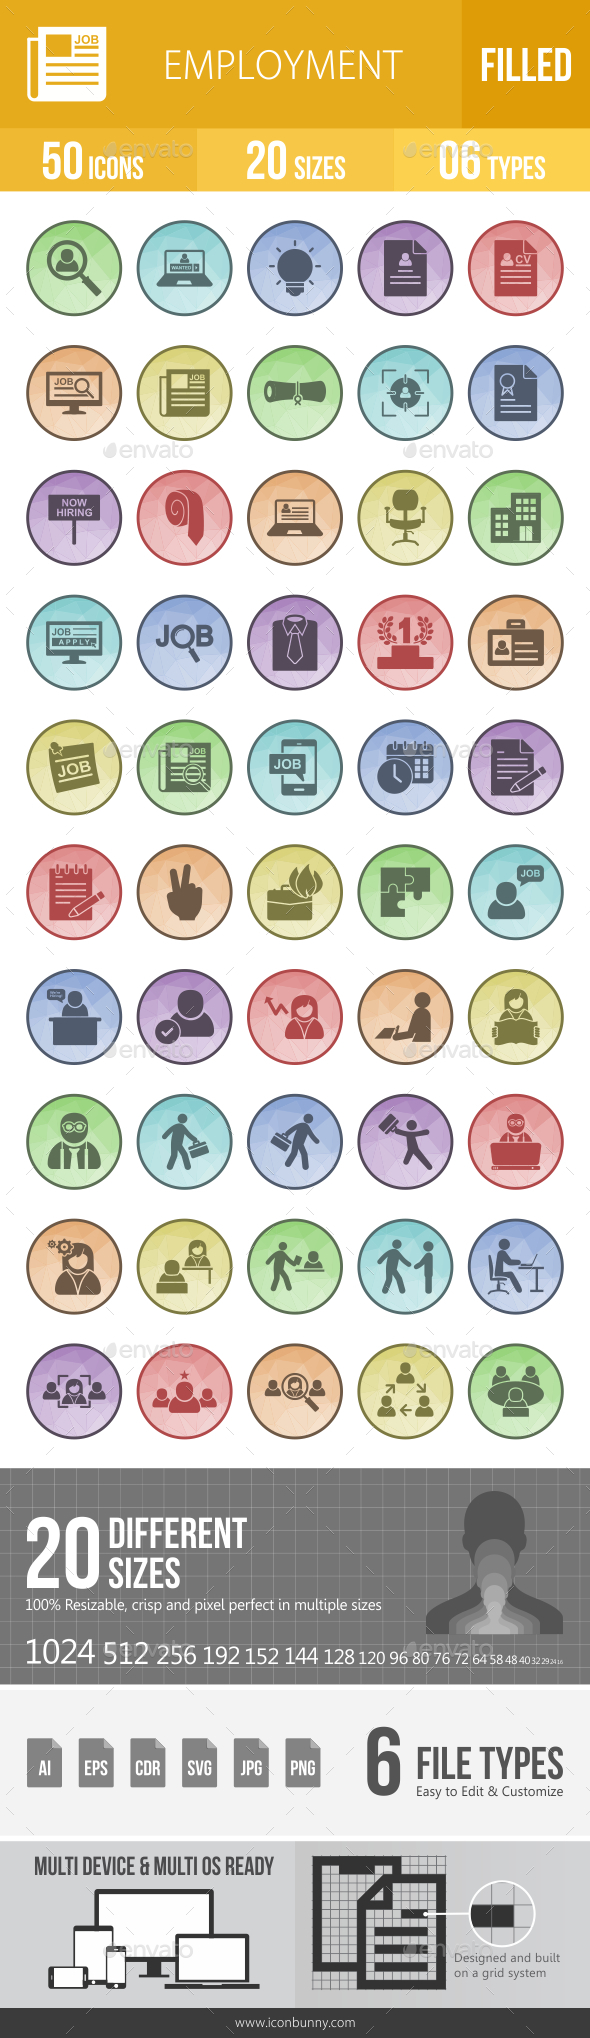 GraphicRiver 50 Employment Filled Low Poly Icons 21157304